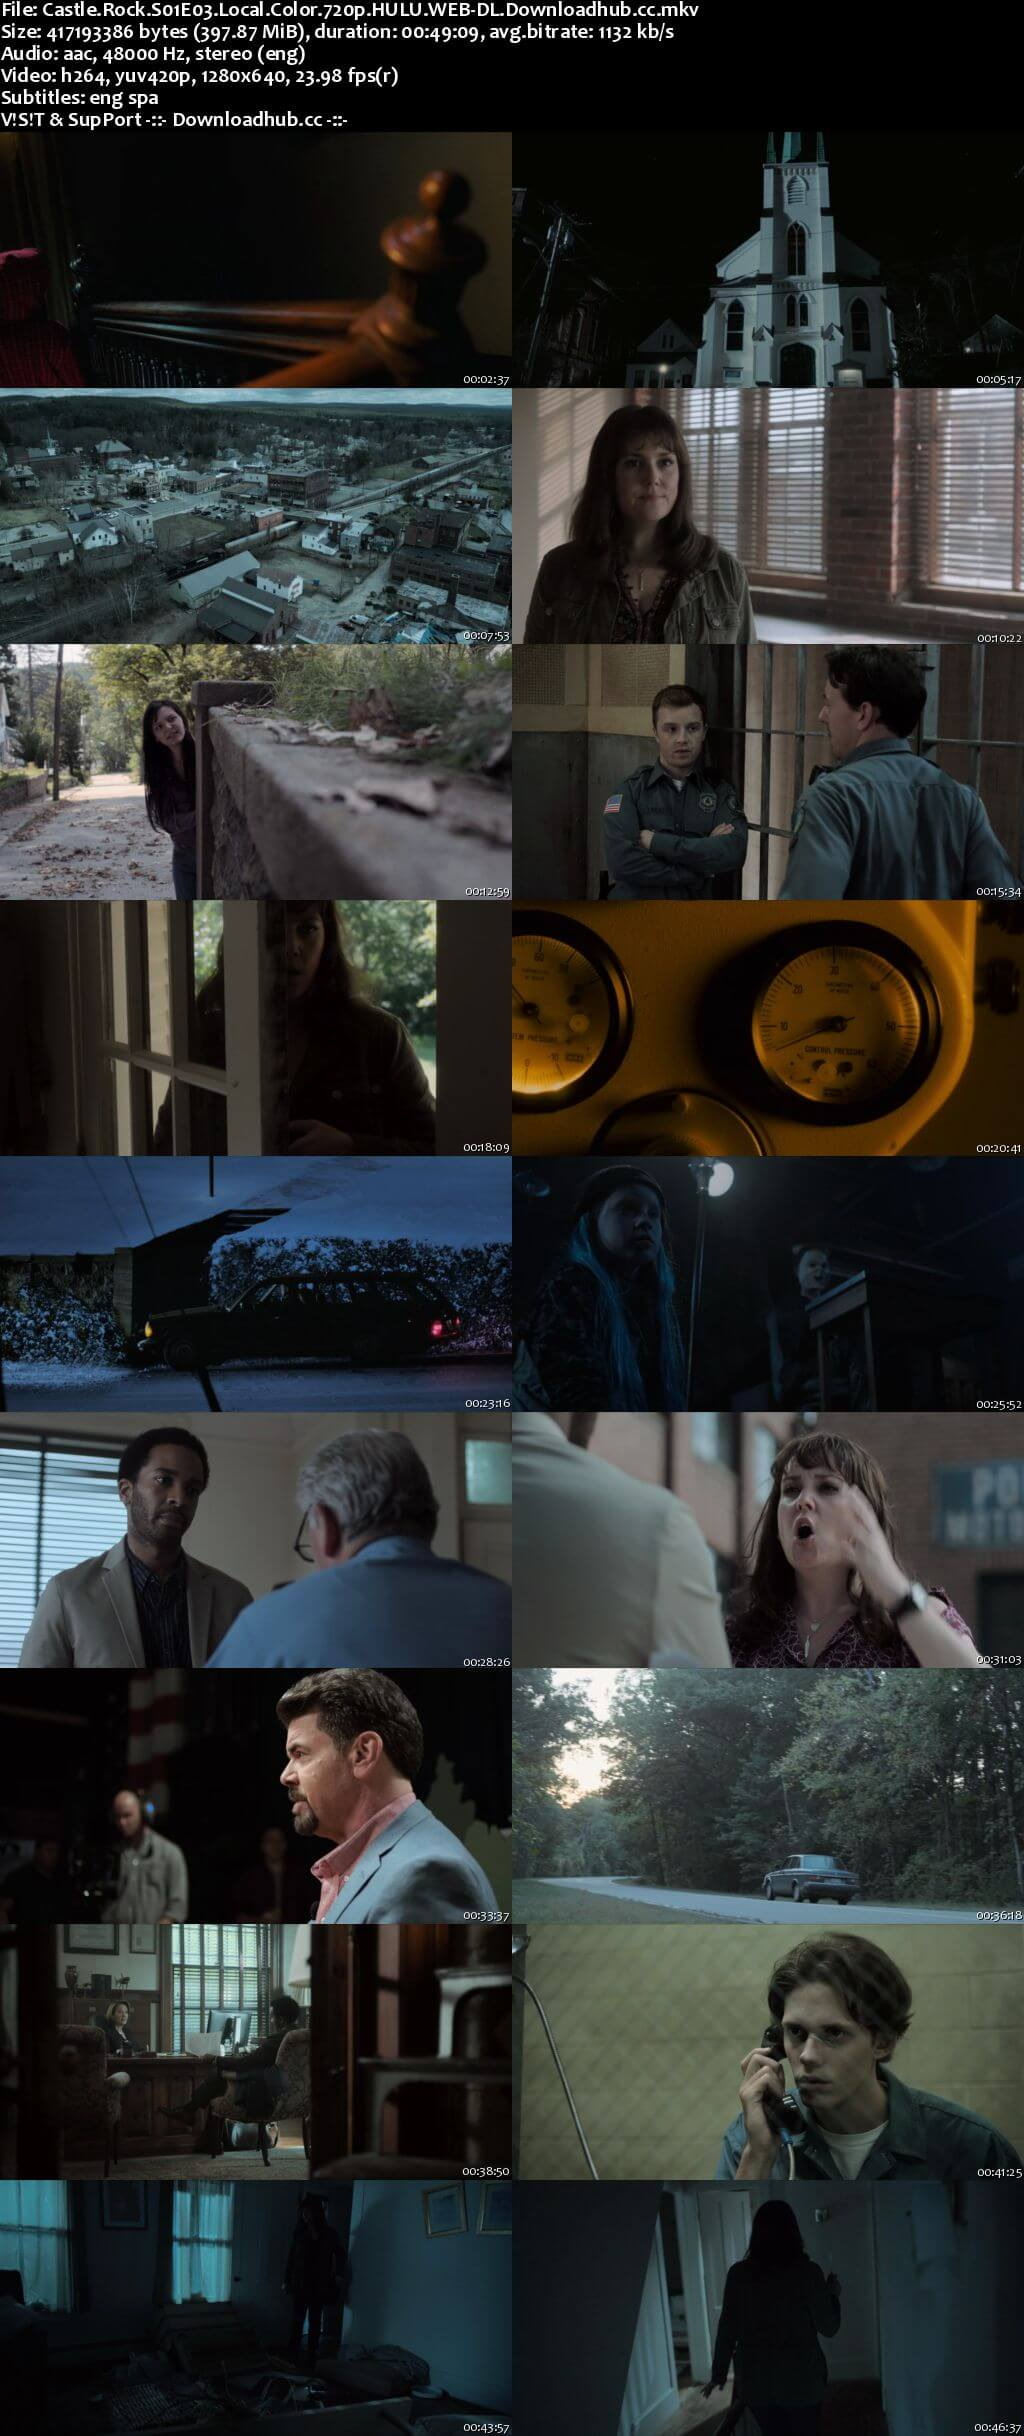 Castle Rock S01E03 400MB WEB-DL 720p ESubs